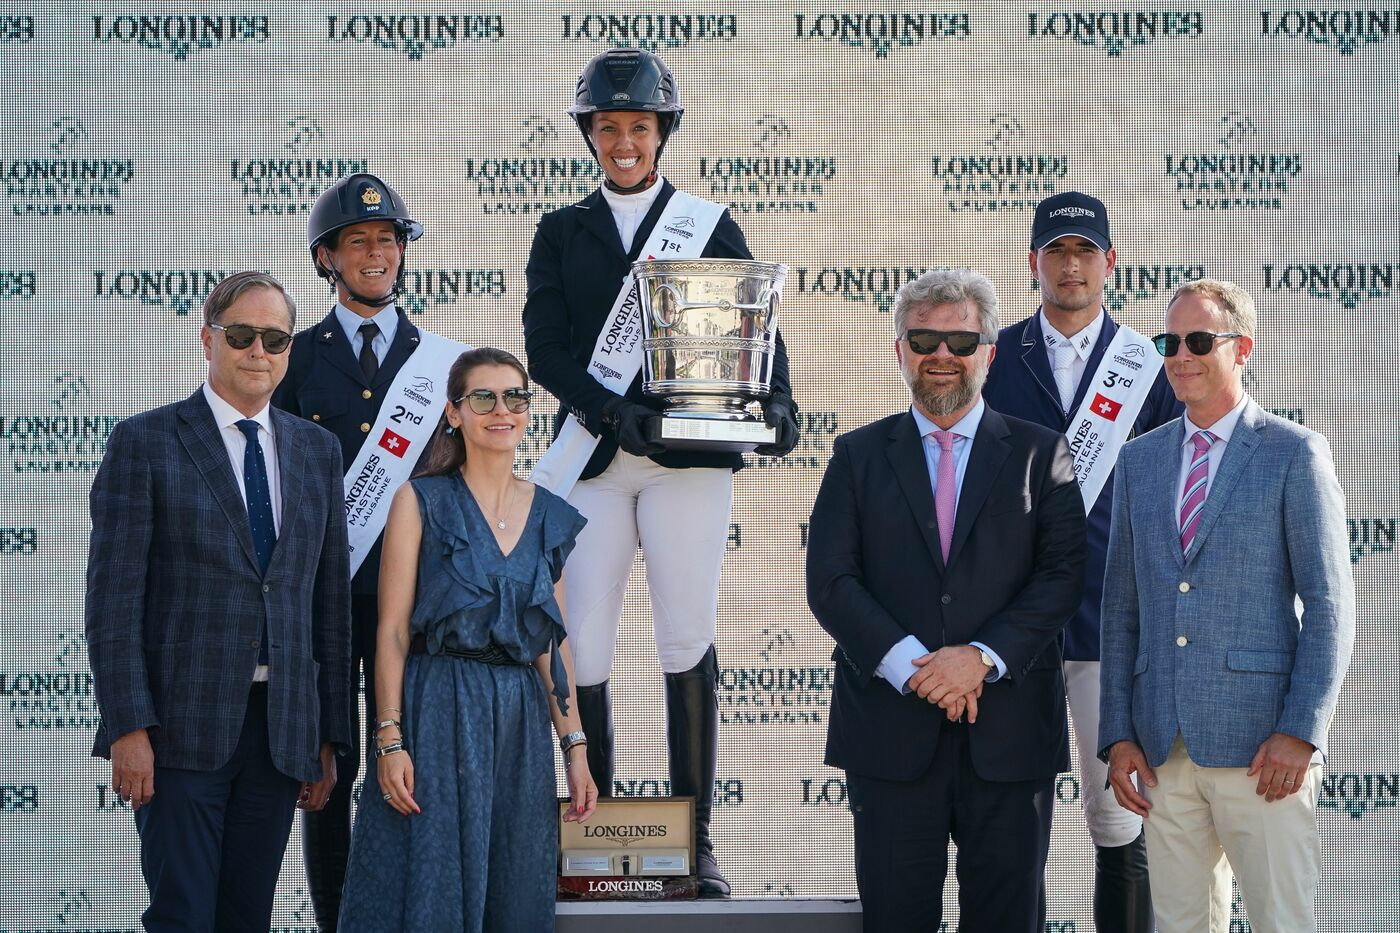 Longines Show Jumping Event: The first Swiss edition of the Longines Masters smiles upon Gudrun Patteet 8